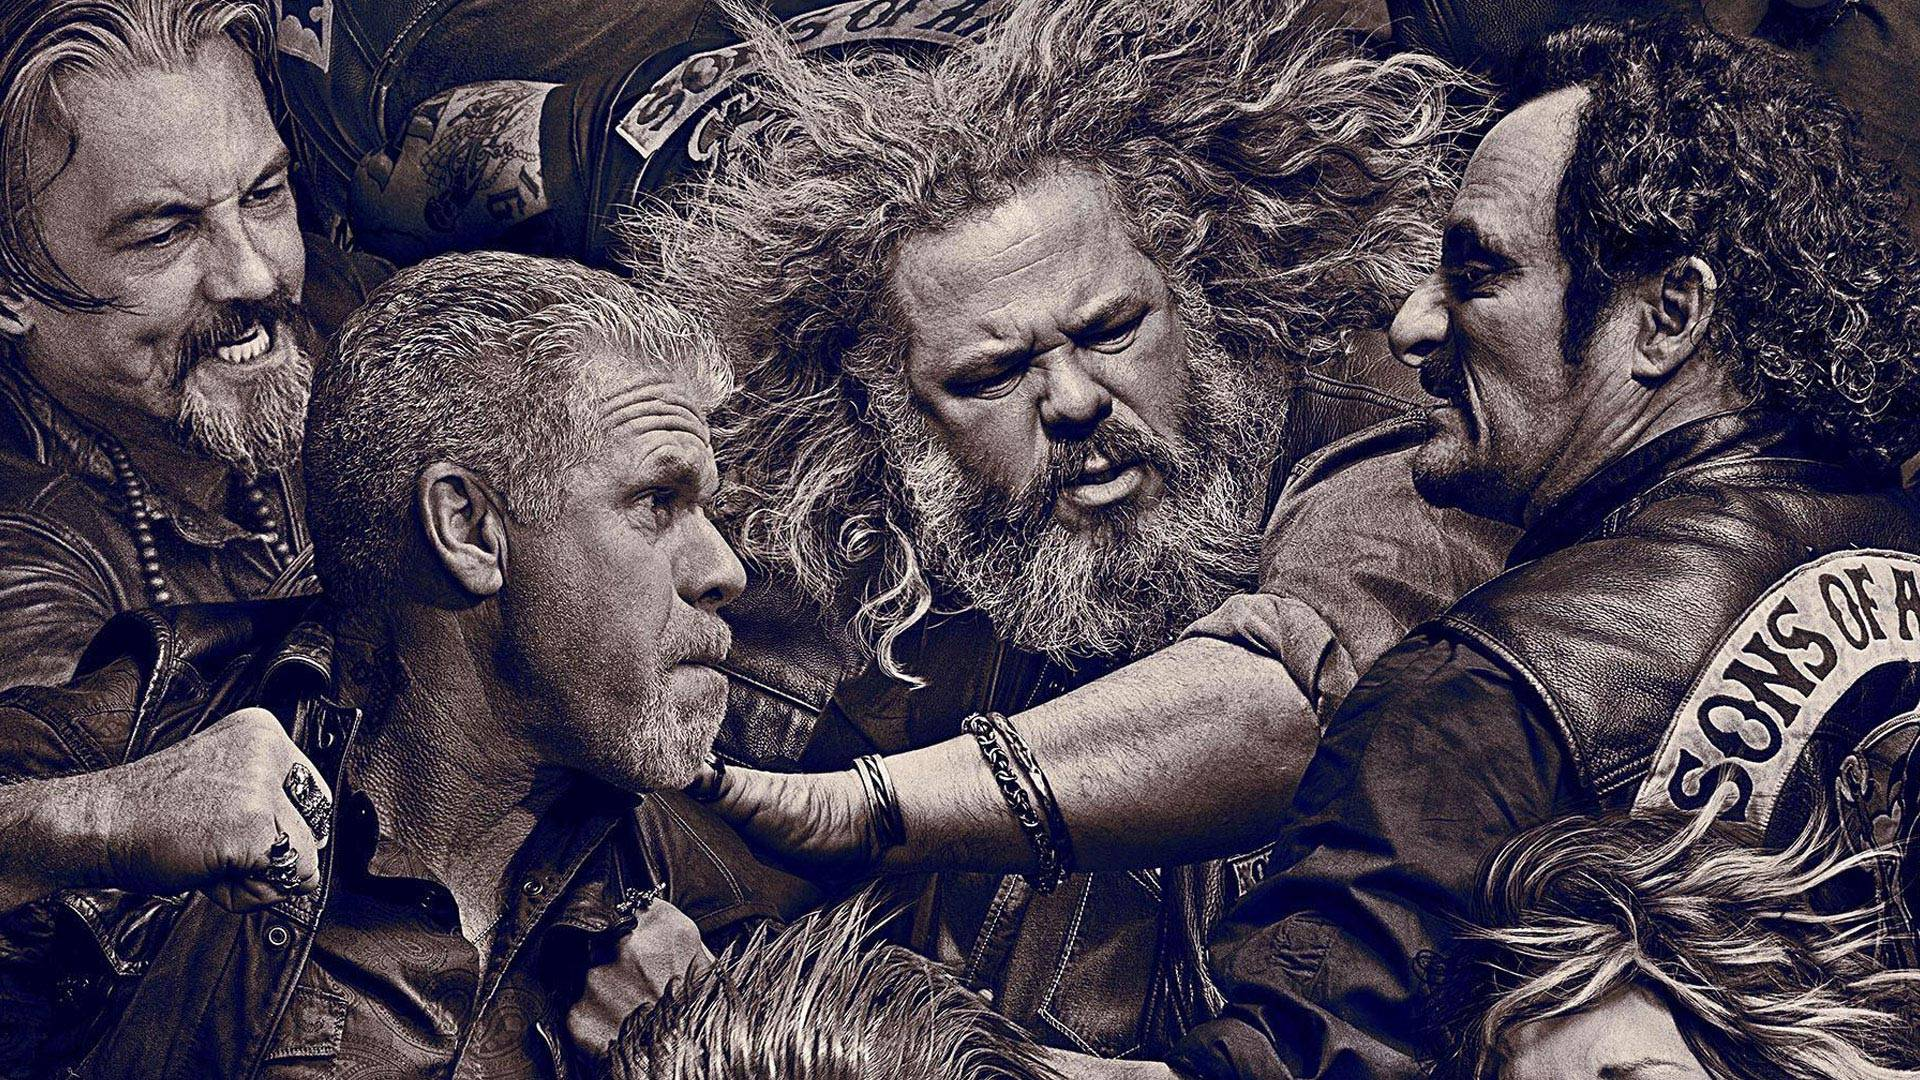 Free Download Sons Of Anarchy Sons Of Anarchy Wallpaper 1920x1080